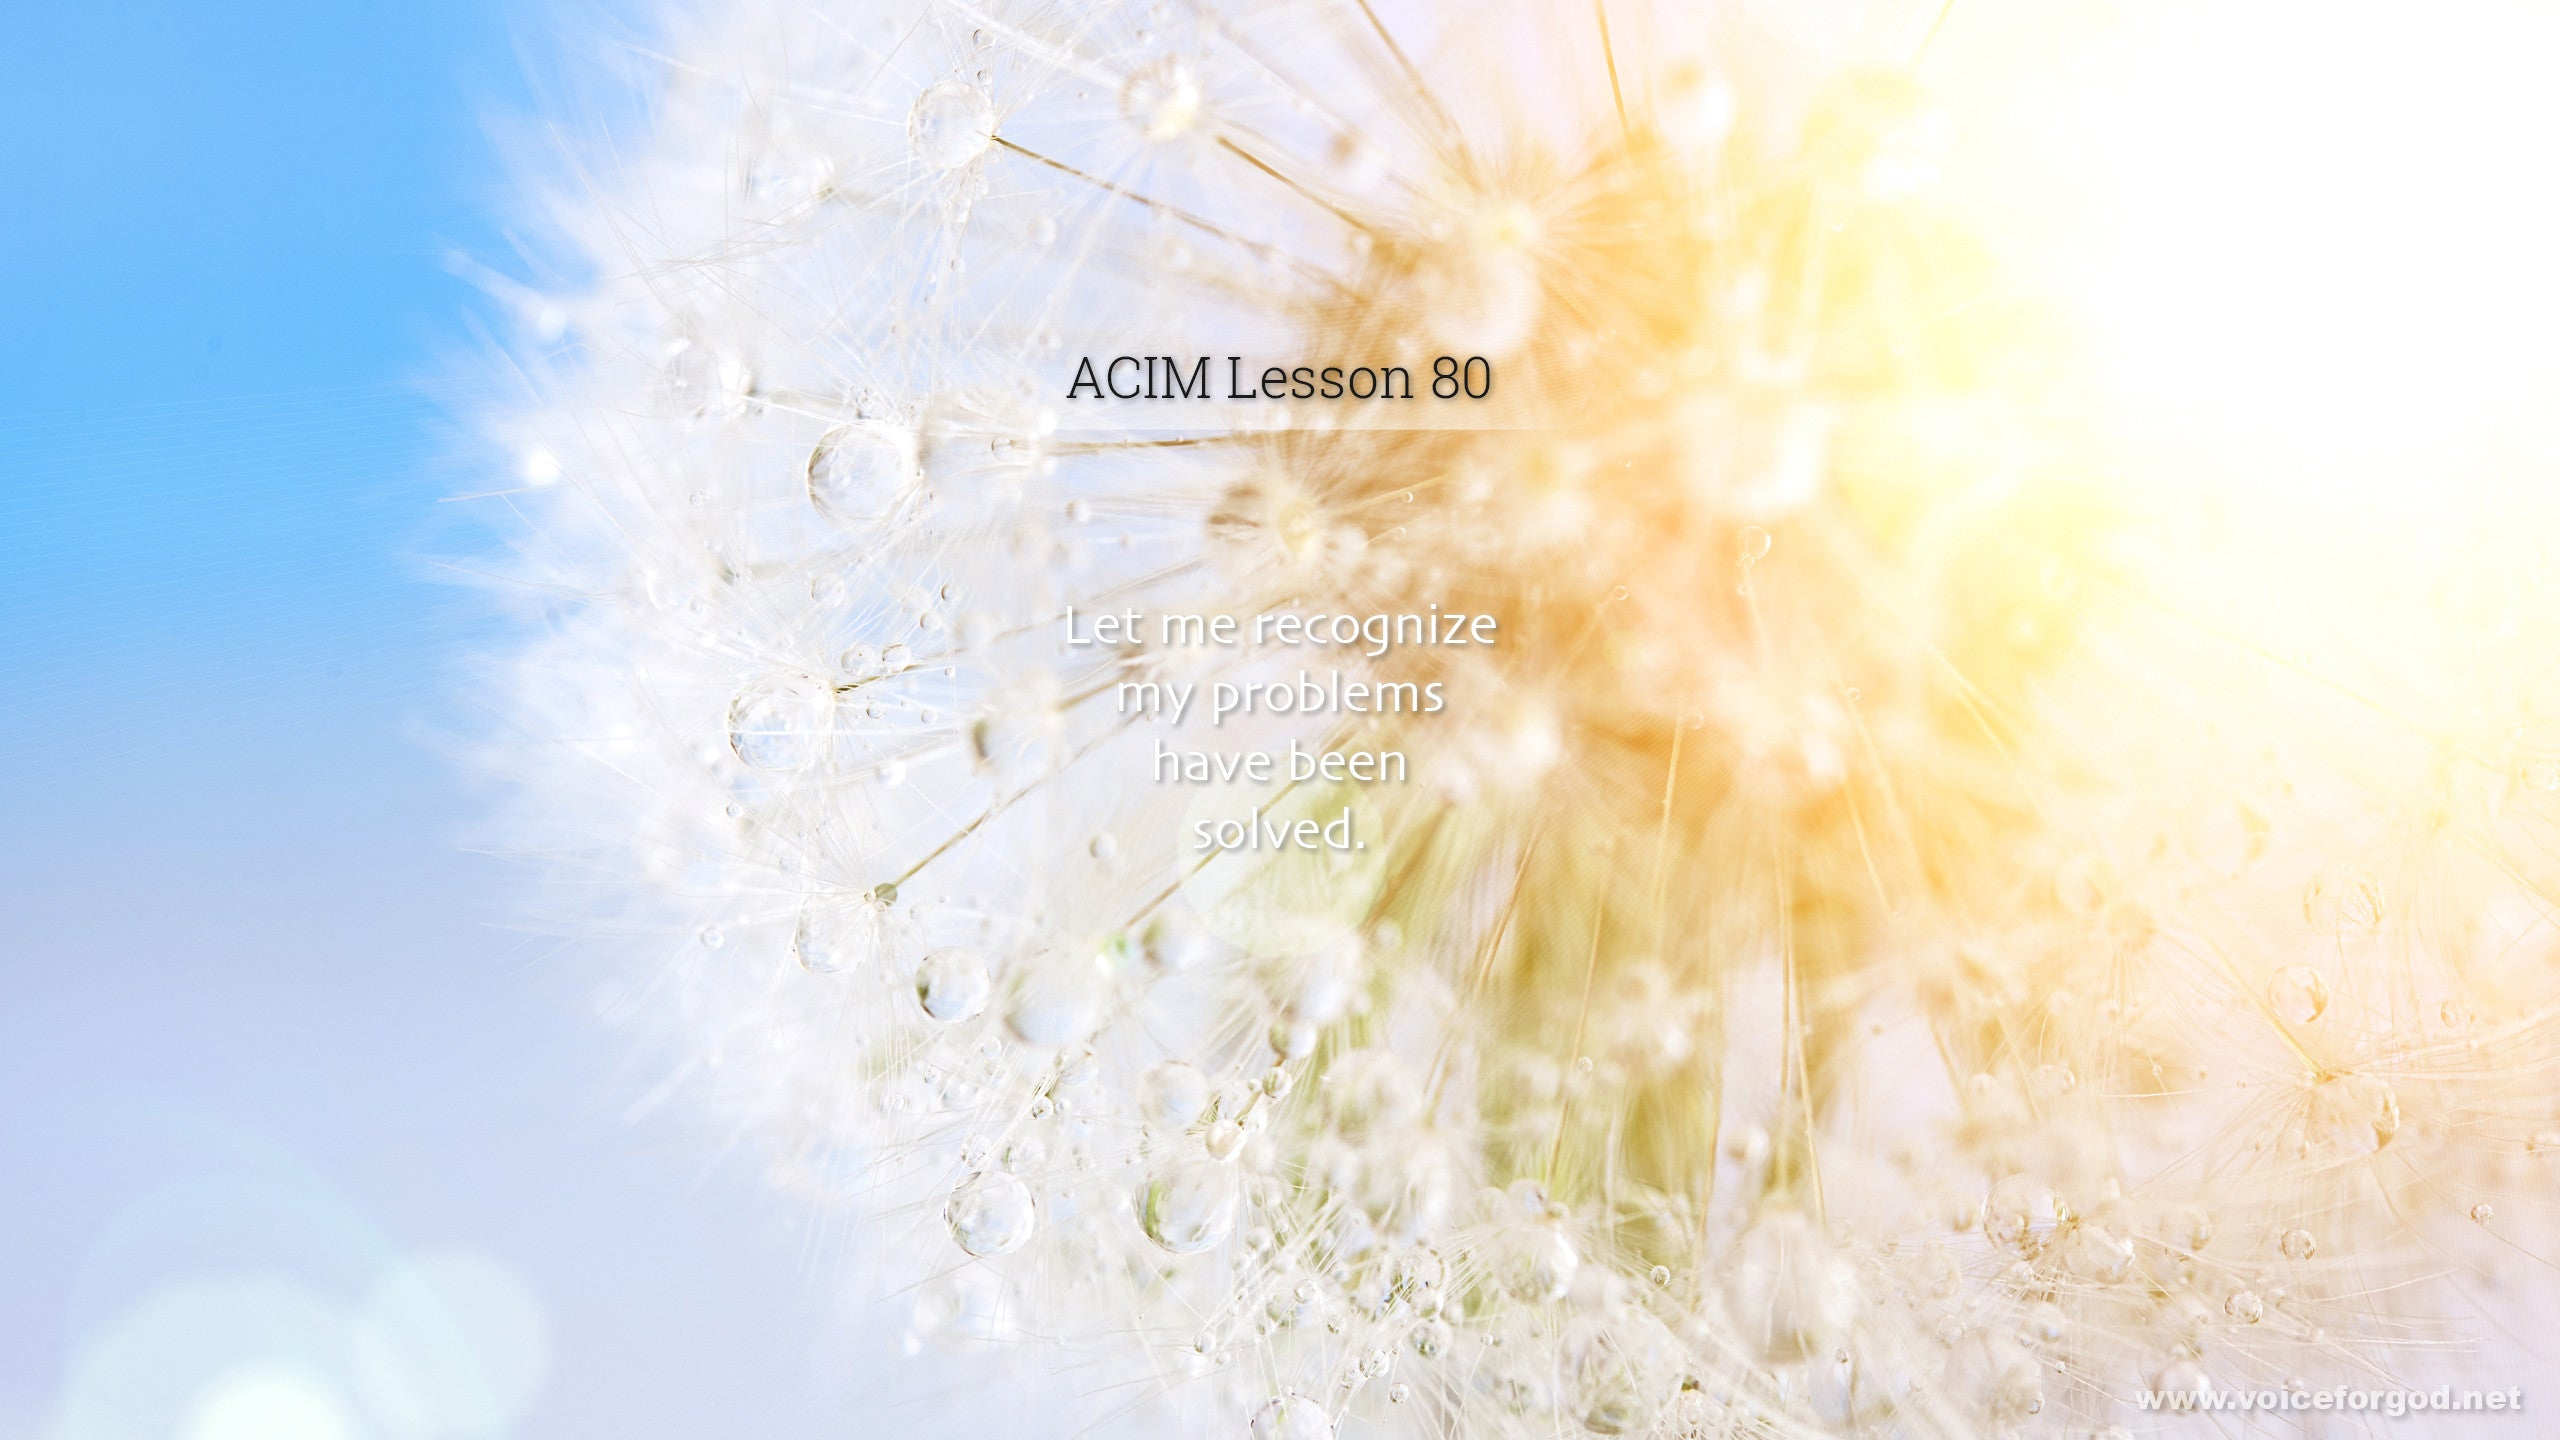 ACIM Lesson 80 - A Course in Miracles Workbook Lesson 80